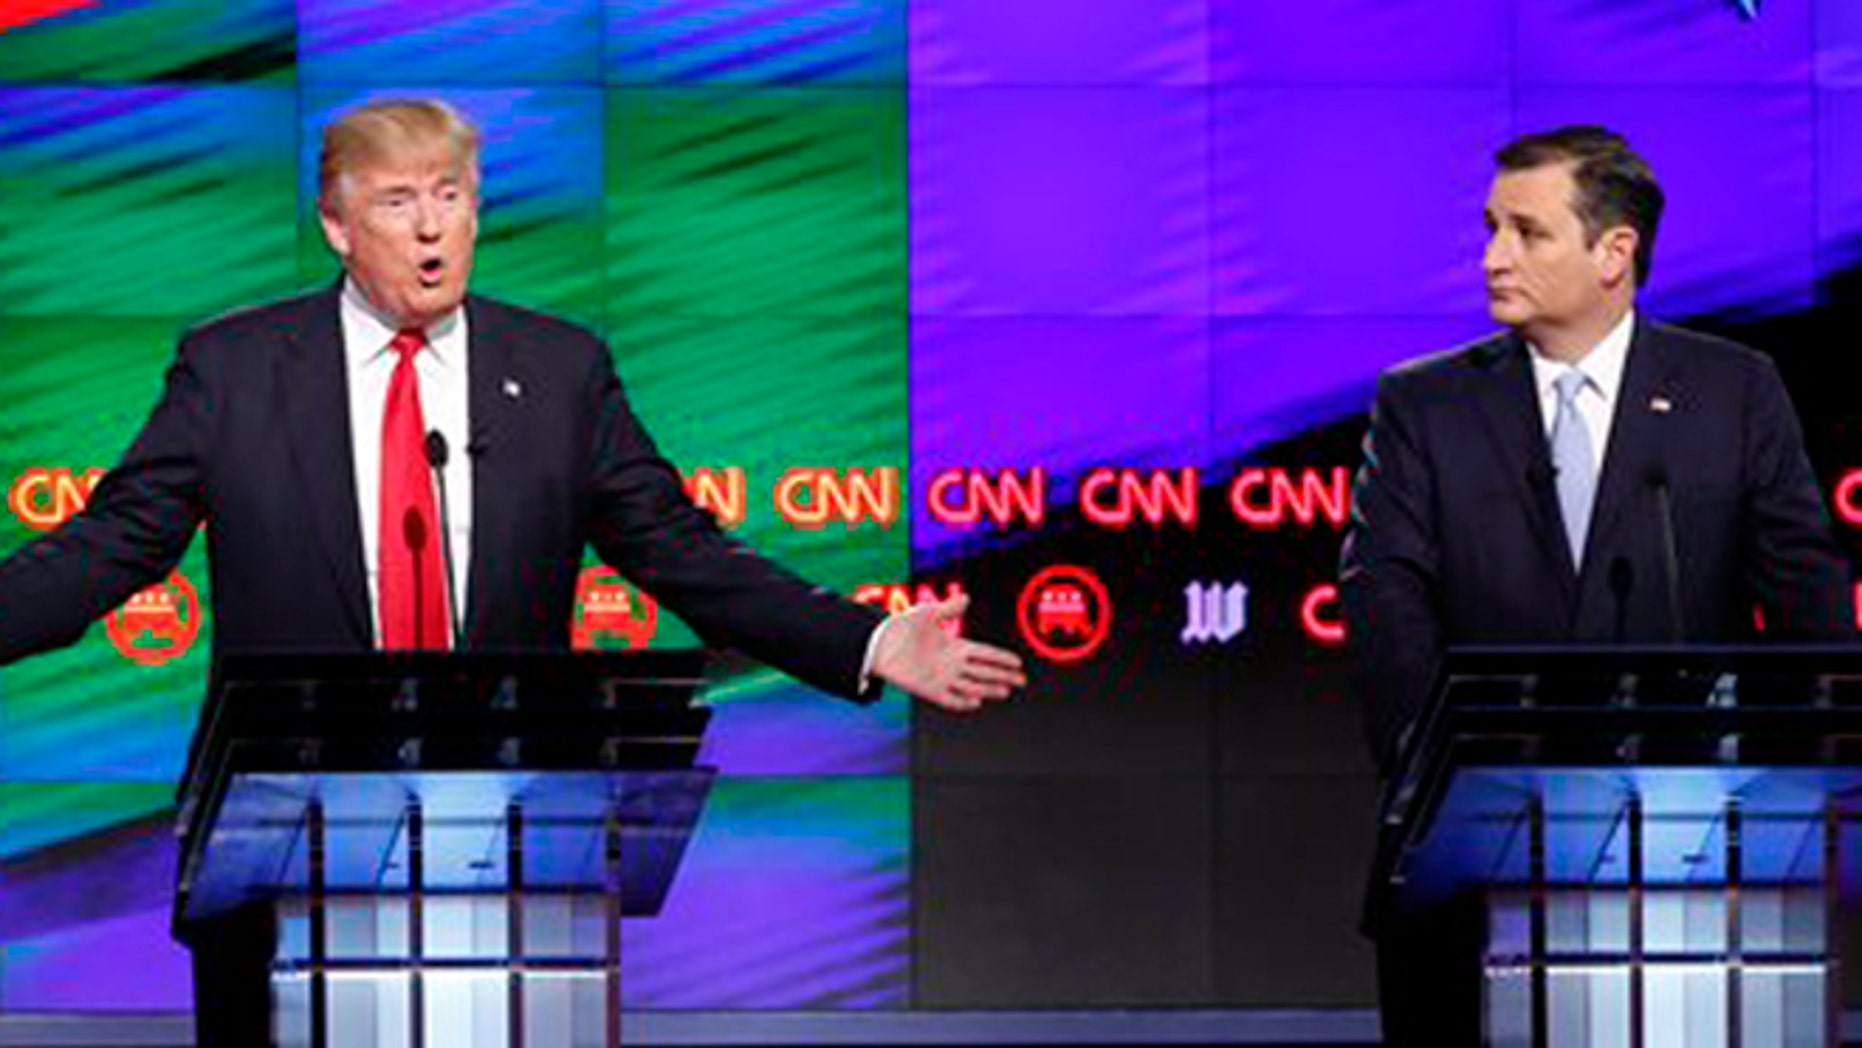 Republican presidential candidate, businessman Donald Trump  answers a question, as Republican presidential candidate, Sen. Ted Cruz, R-Texas, , listens, during the Republican presidential debate sponsored by CNN, Salem Media Group and the Washington Times at the University of Miami,  Thursday, March 10, 2016, in Coral Gables, Fla. (AP Photo/Wilfredo Lee)